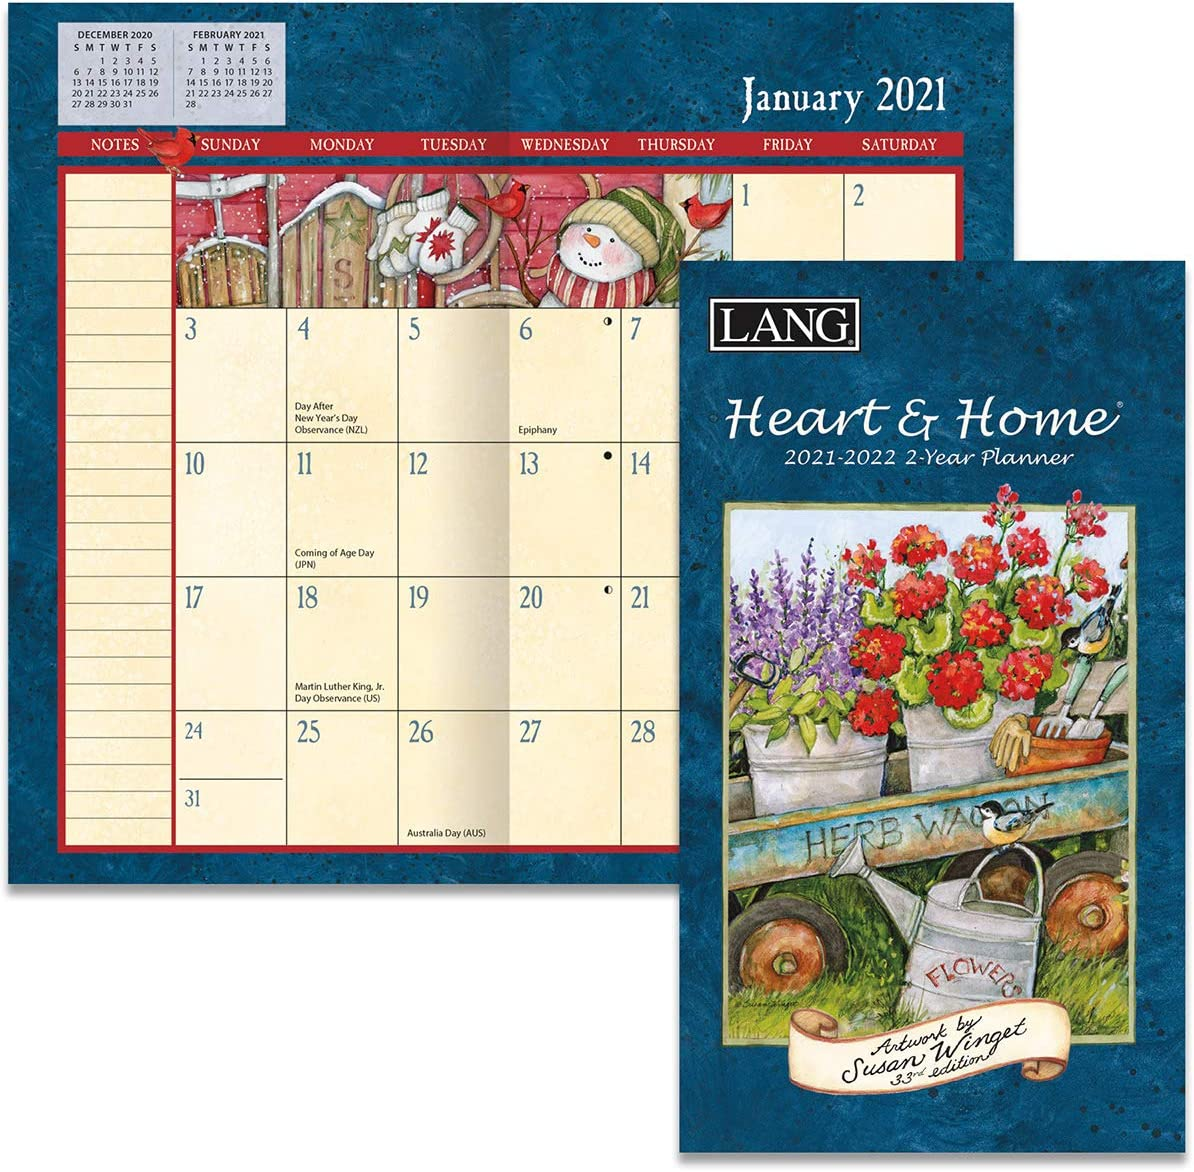 LANG Heart & Home 2021 Two Year Planner (21991071072)